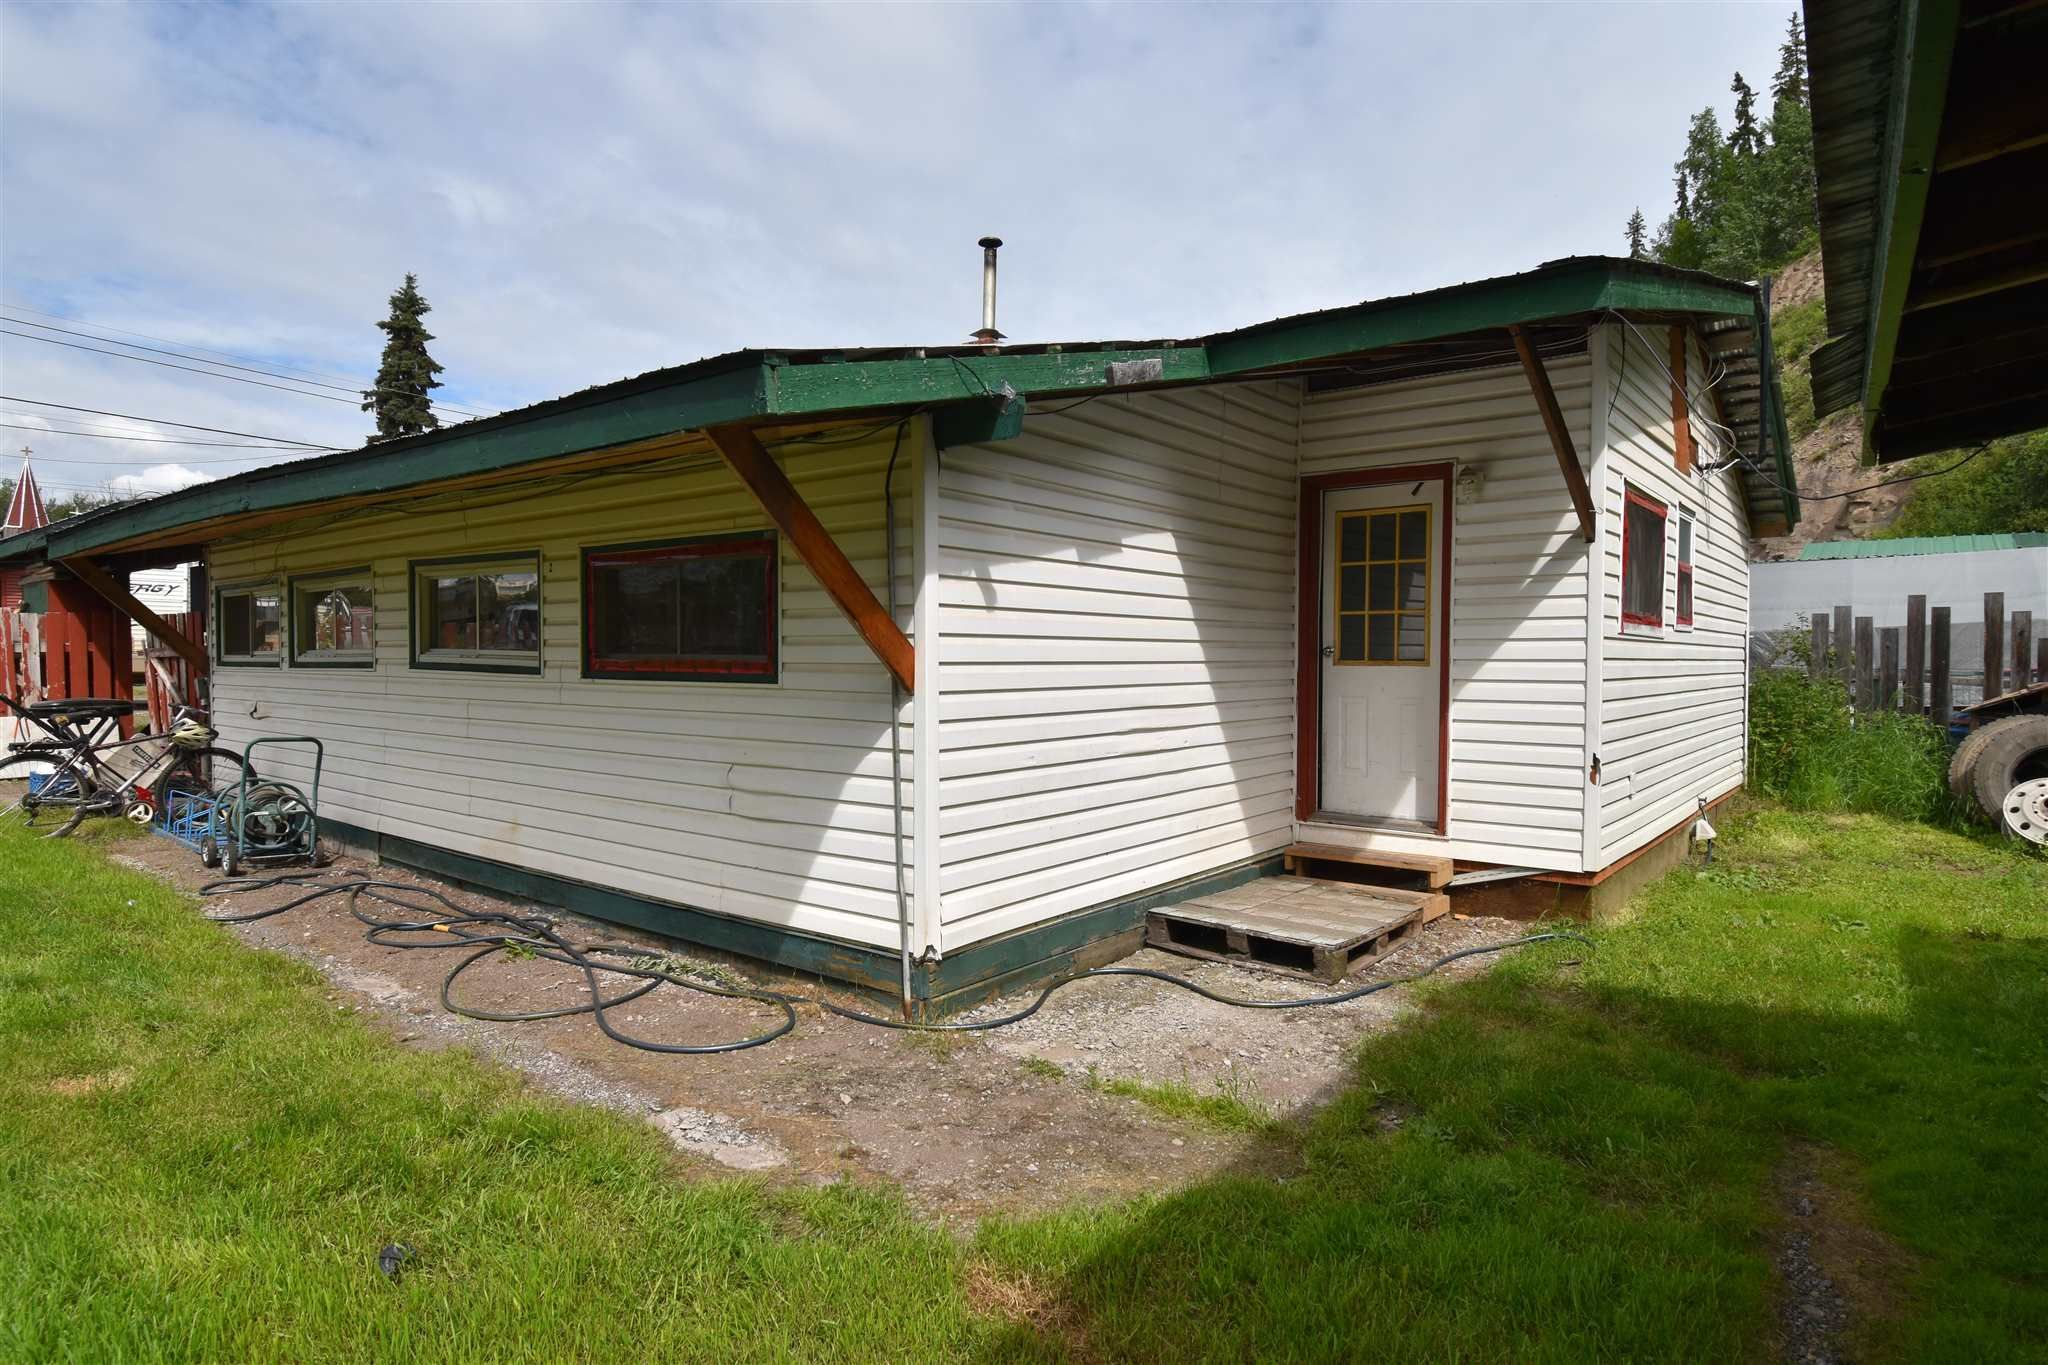 Main Photo: 1625 3RD Street: Telkwa House for sale (Smithers And Area (Zone 54))  : MLS®# R2596269